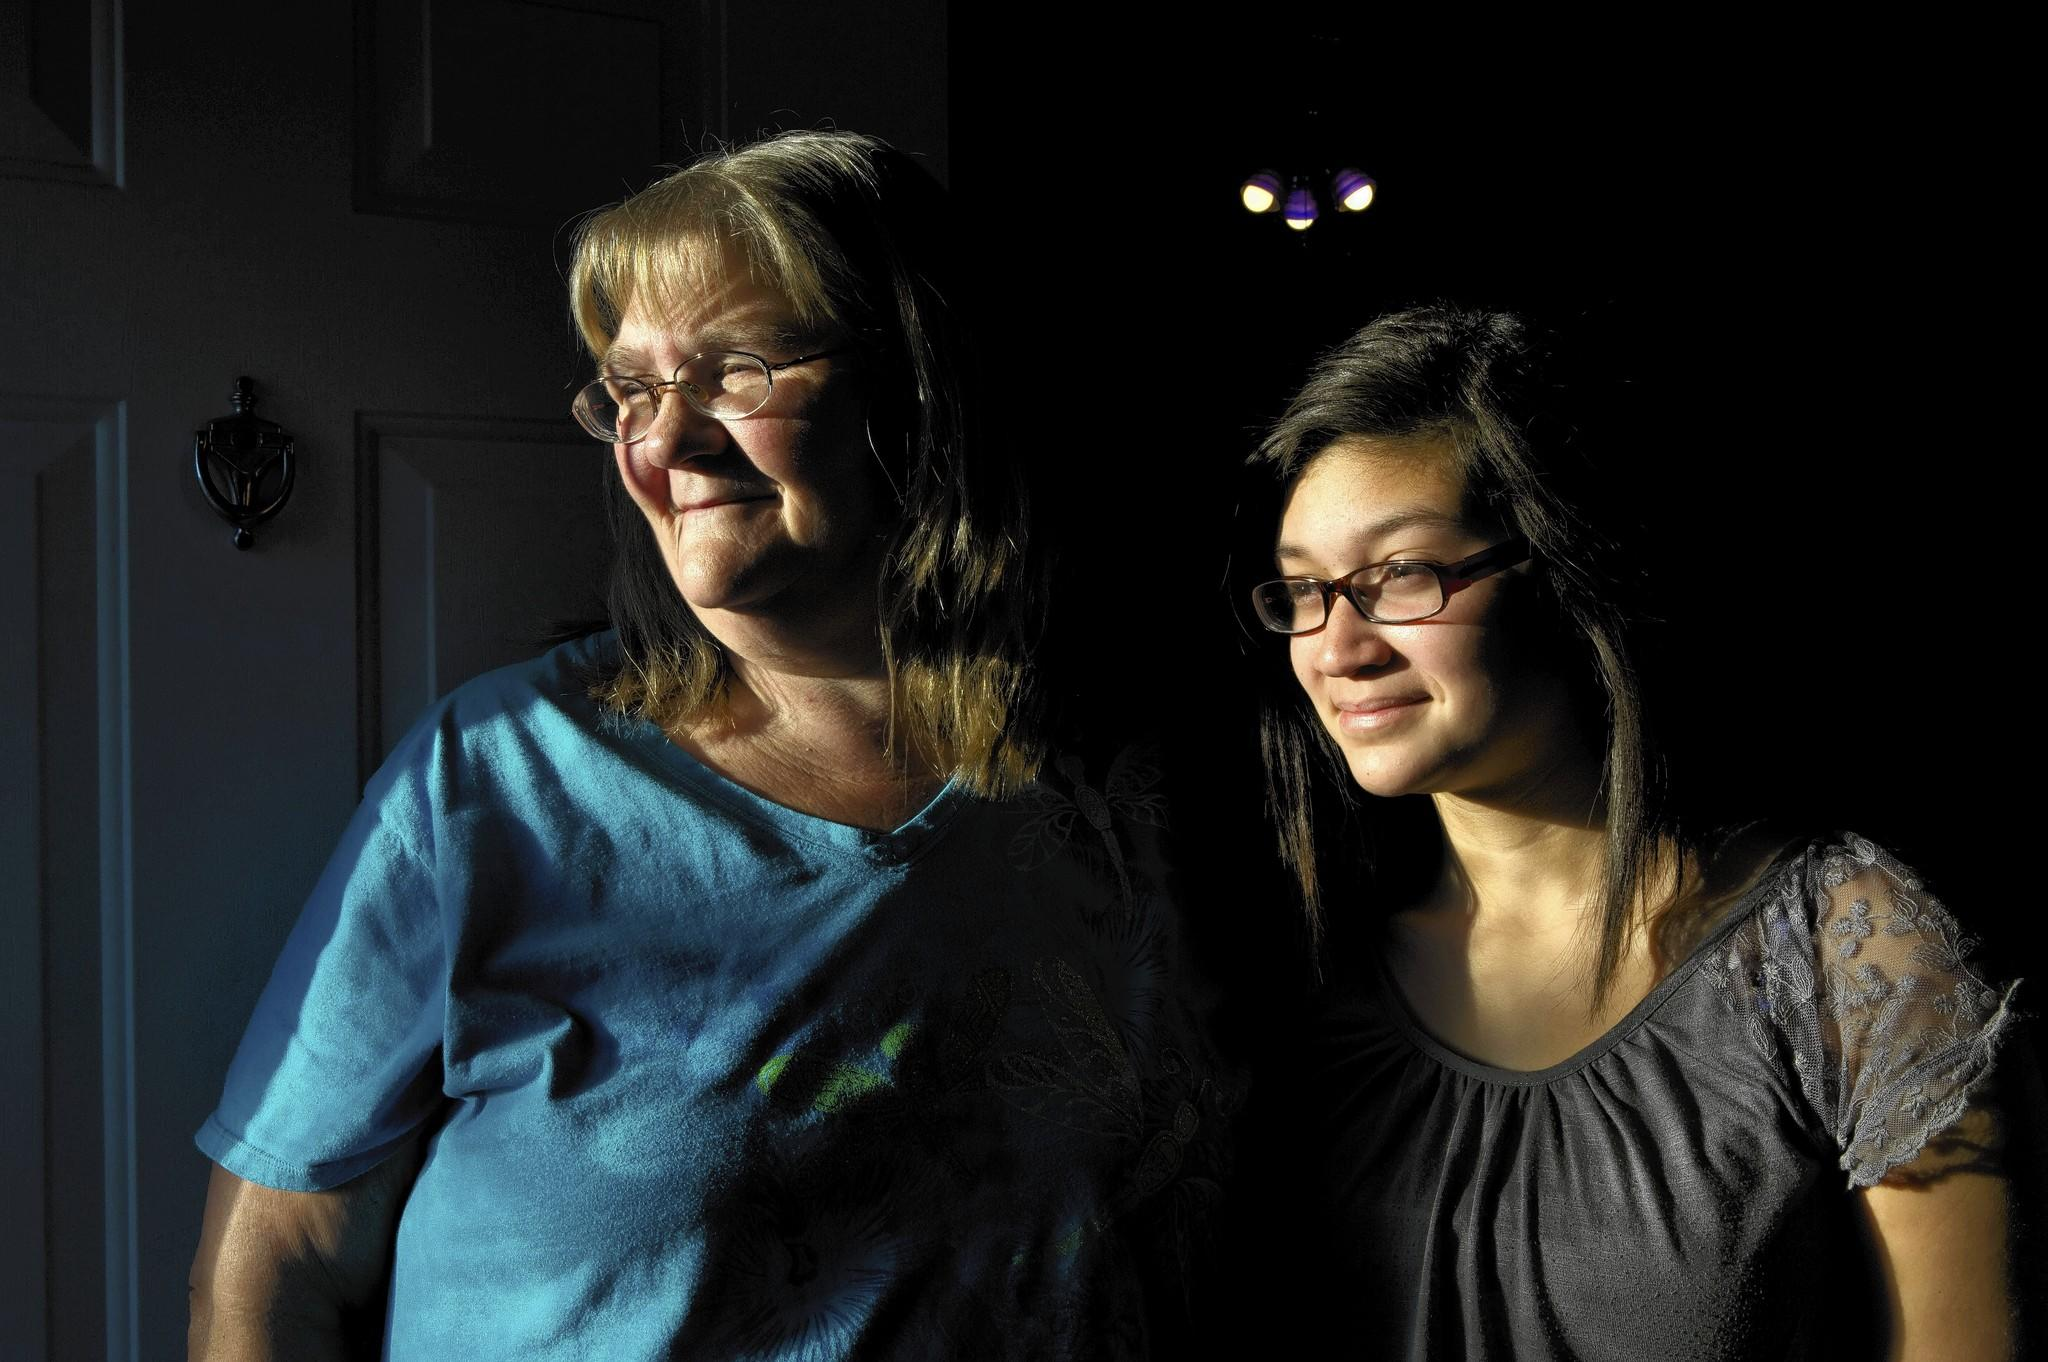 The Internal Revenue Service rejected Wauconda resident Laurie Villarreal's 2012 tax return because, it said, the Social Security number she entered for her daughter, Jasmine Martinez, was associated with a dead person.